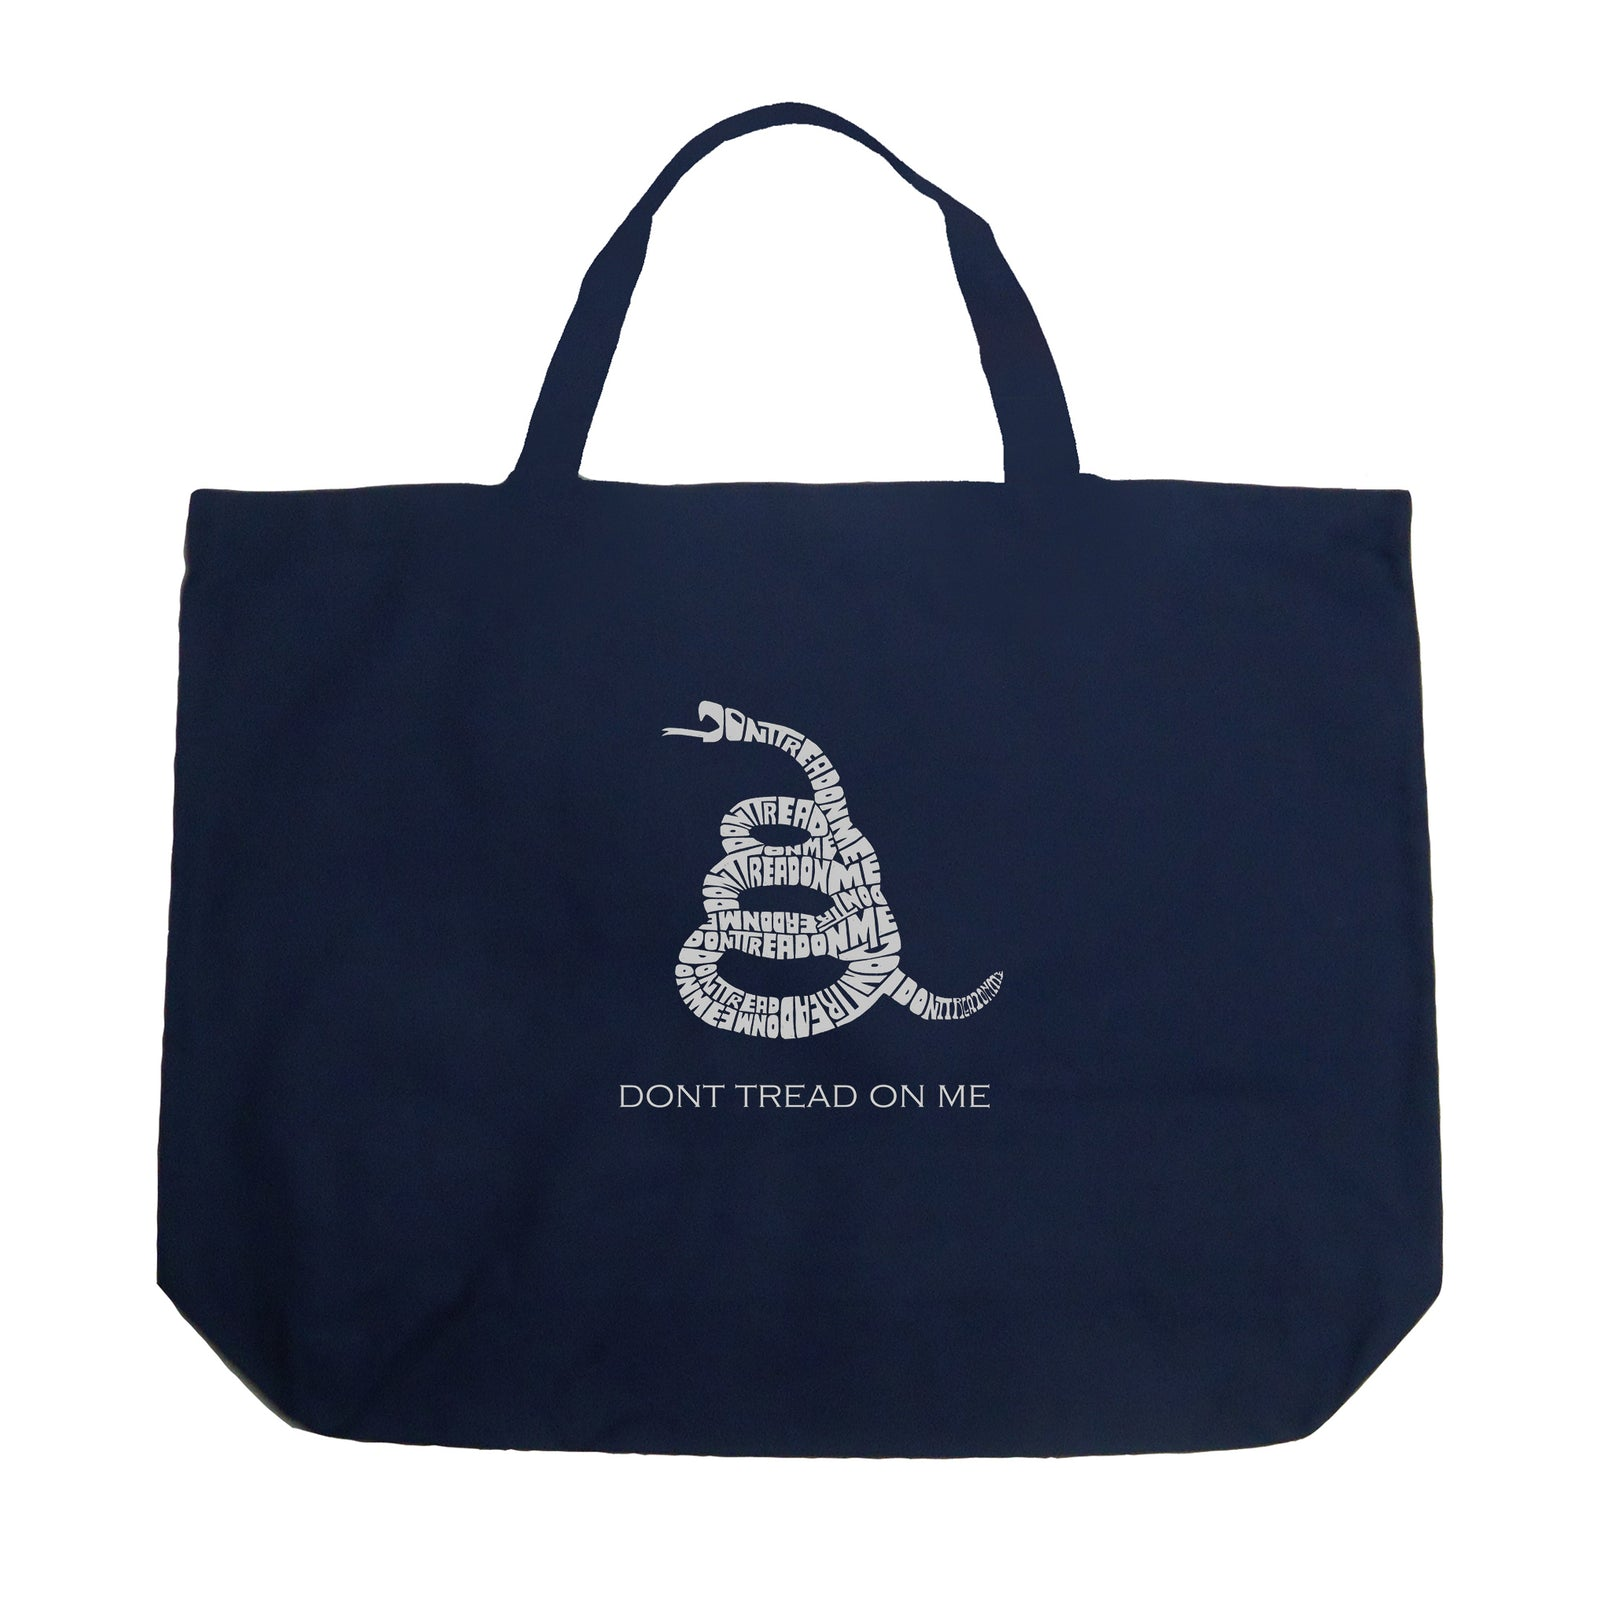 Large Tote Bag - DONT TREAD ON ME